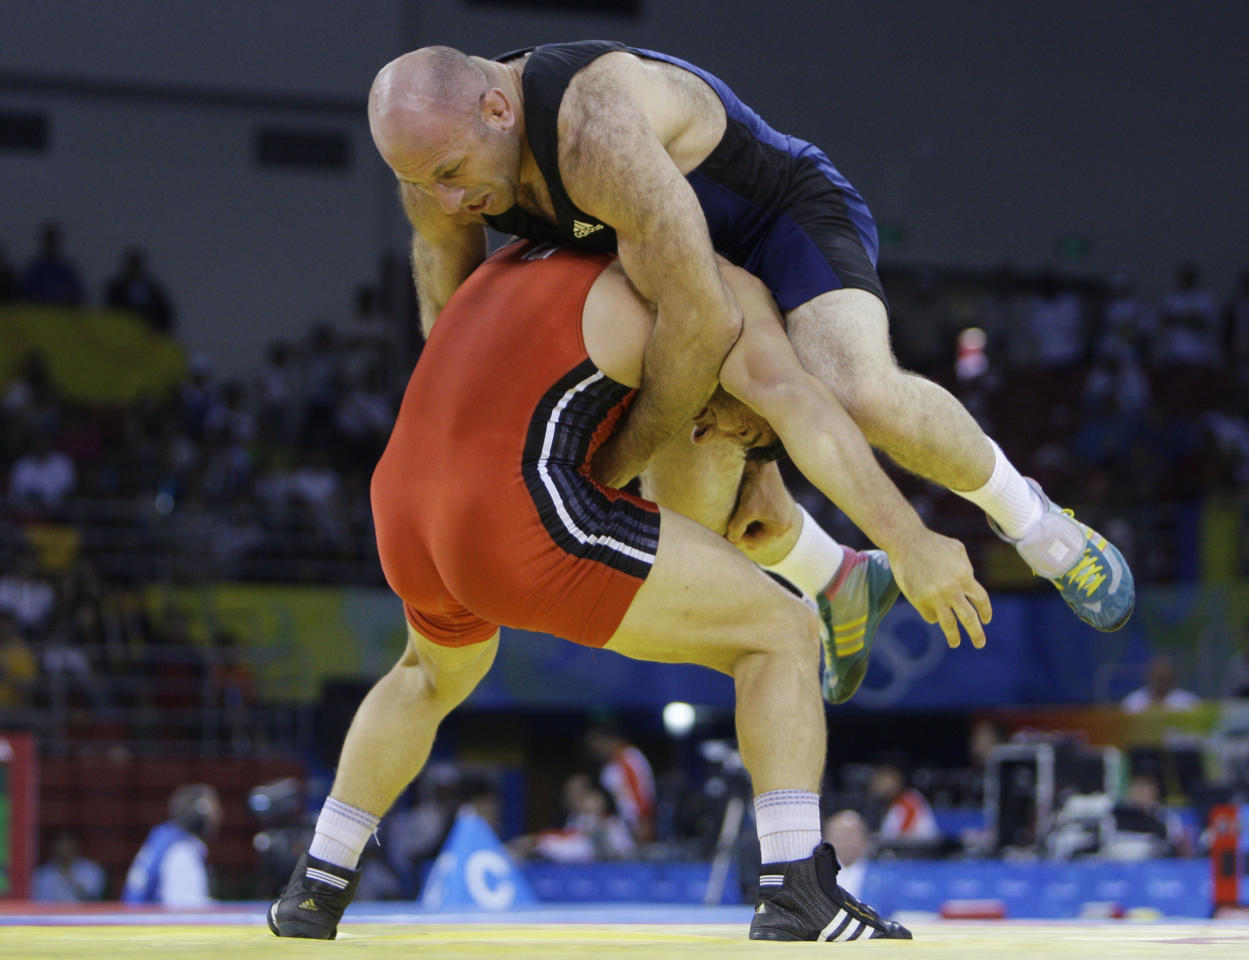 Tajikistan's Yusup Abdusalamov, below, wrestles Georgia's Revazi Mindorashvili in a gold medal 84kg freestyle match at the 2008 Olympics in Beijing, Thursday, Aug. 21, 2008. Mindorashvili won the gold.  (AP Photo/David Guttenfelder)